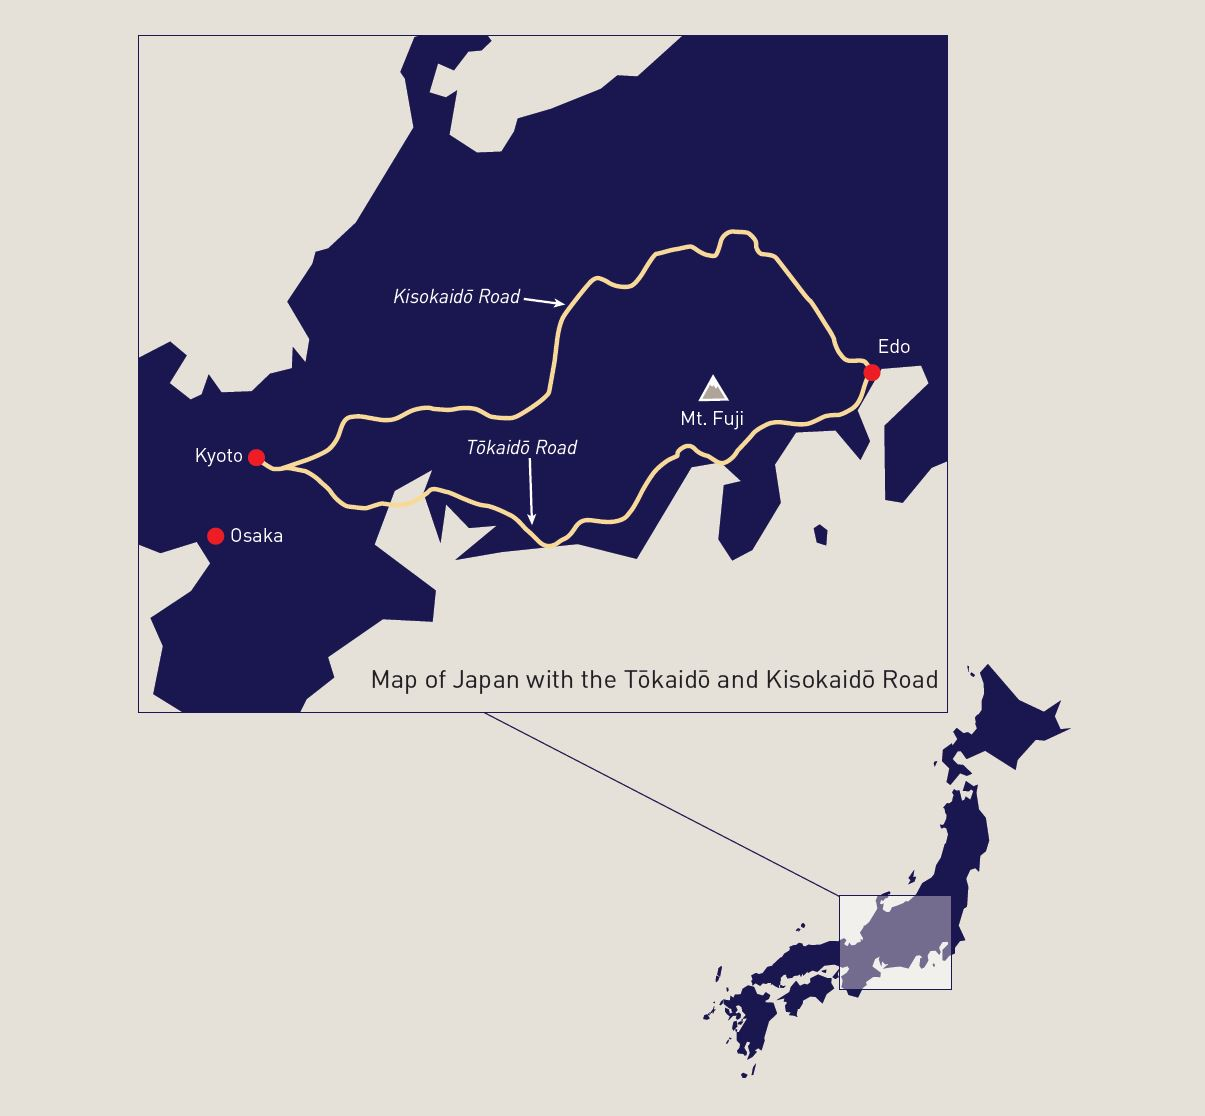 Map of Japan with the Tokaido and Kisokaido Road